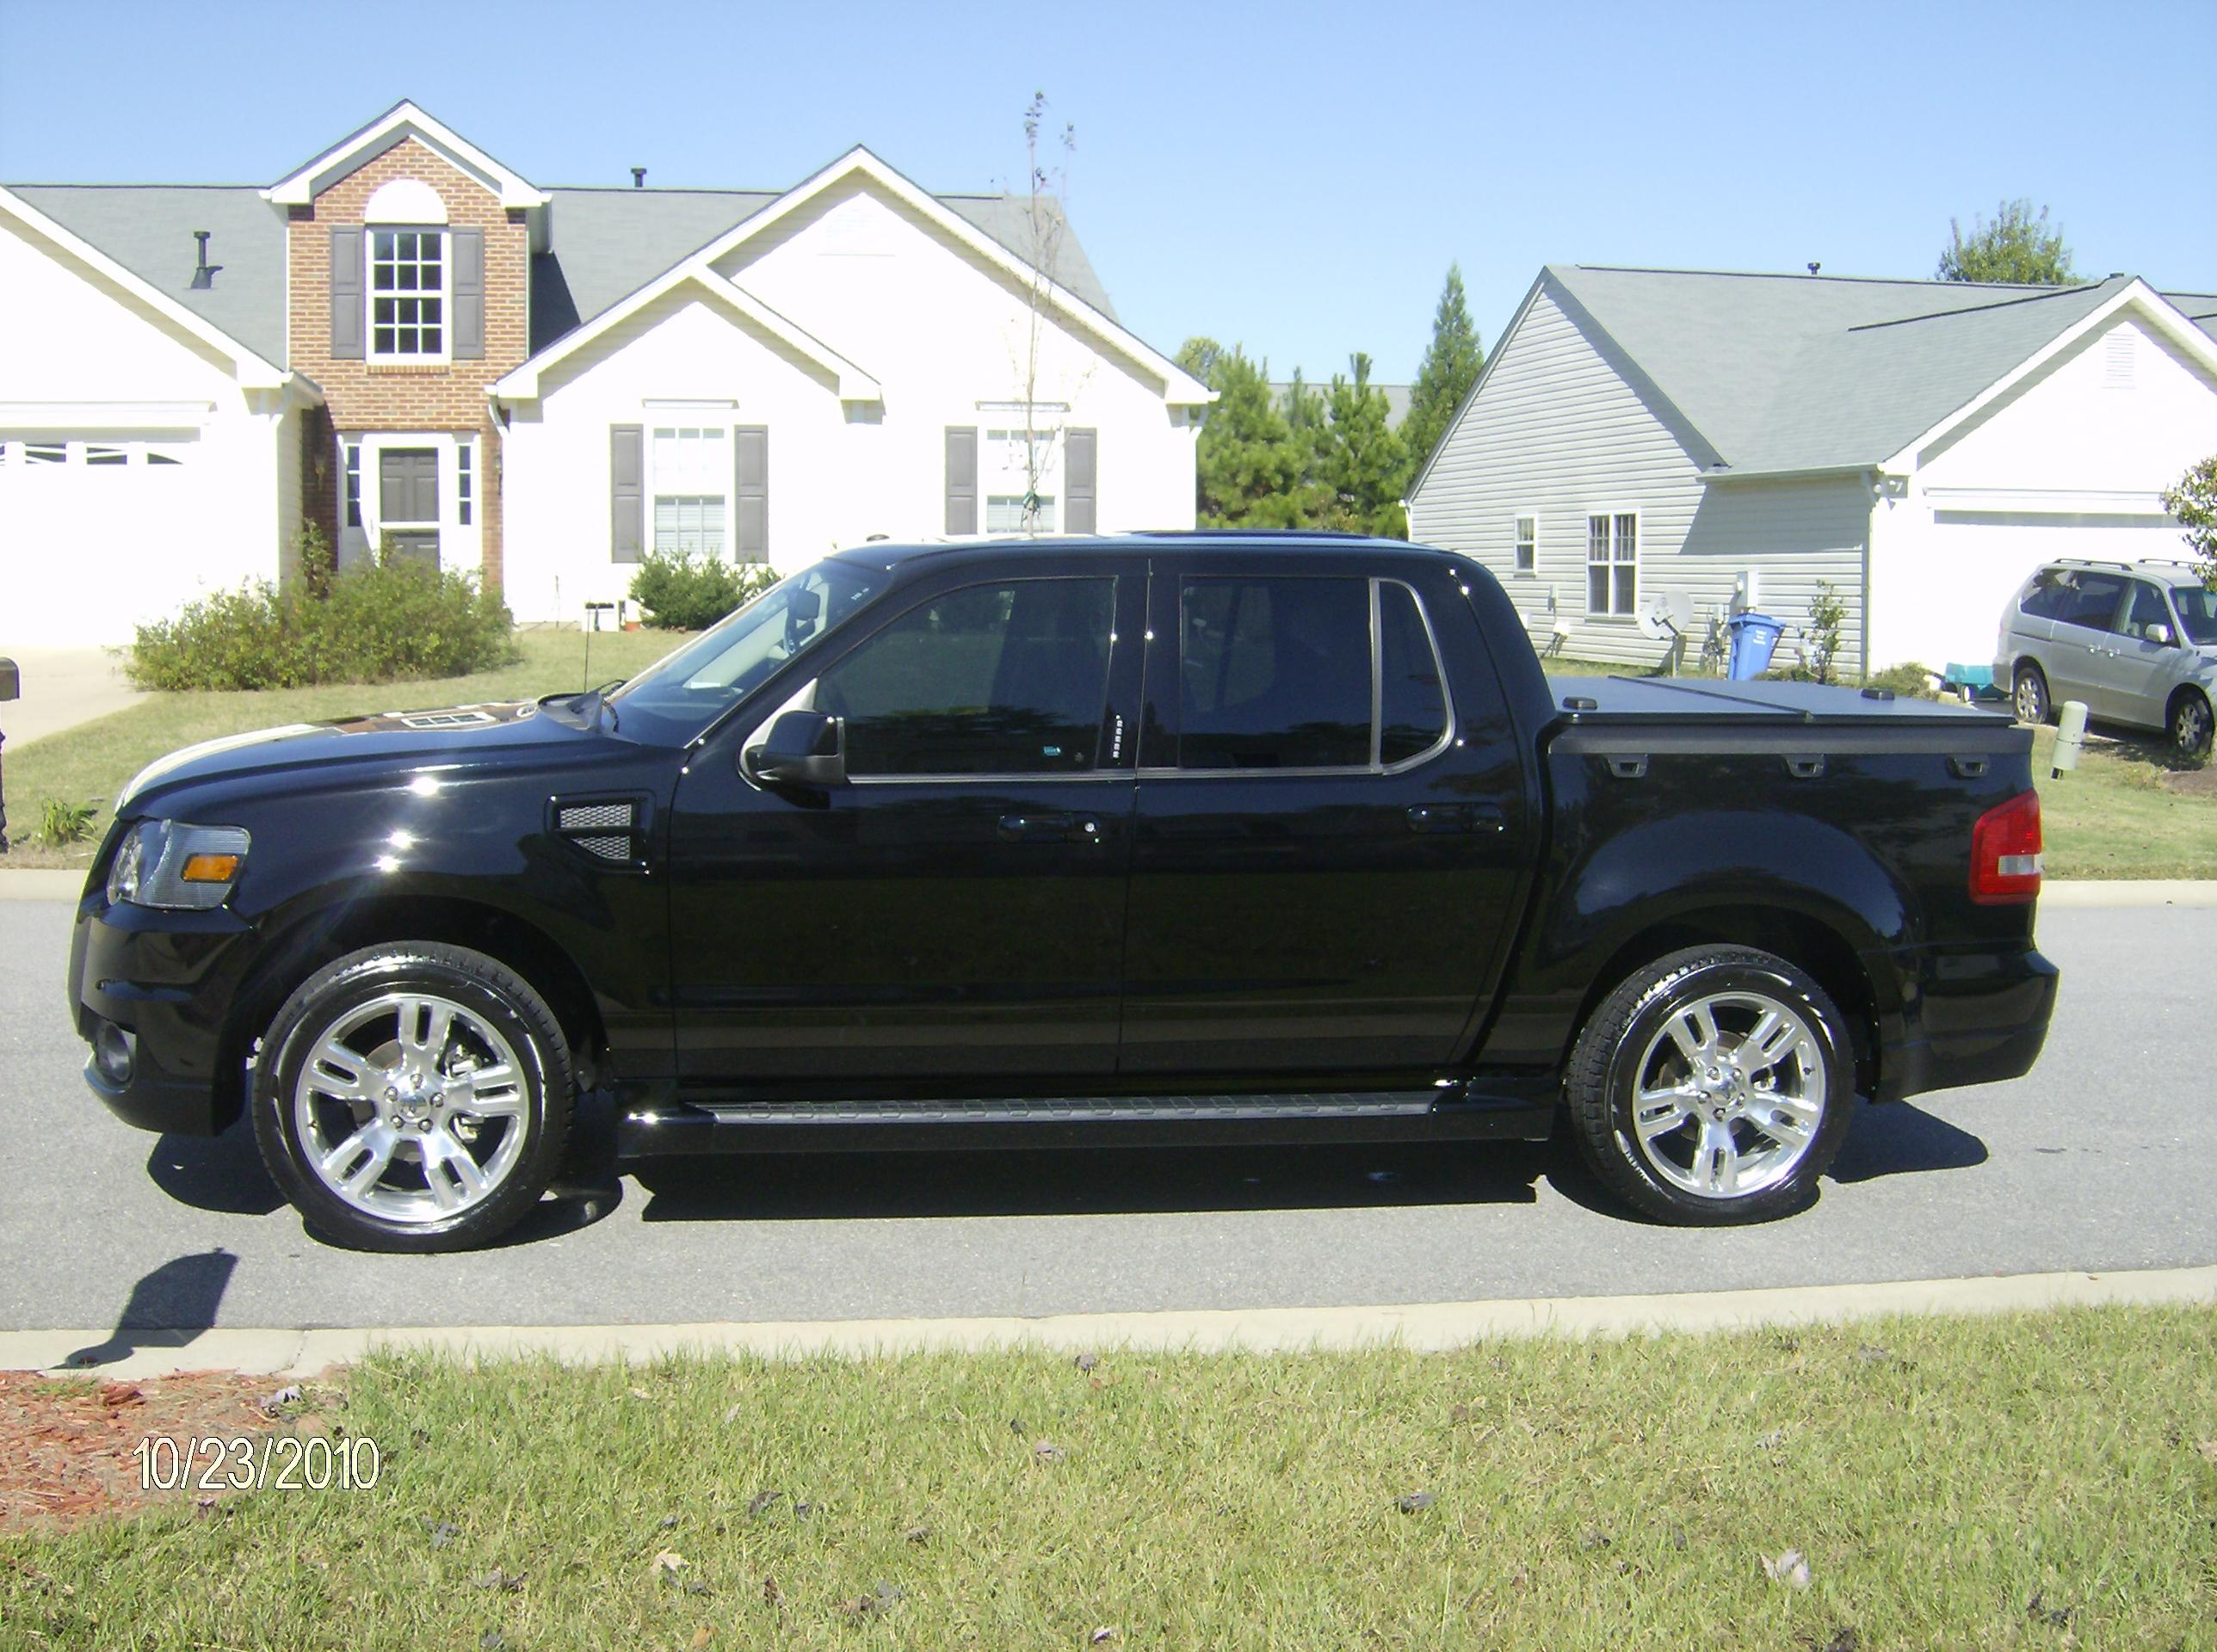 cryles 2010 ford explorer sport traclimited specs photos modification info at cardomain. Black Bedroom Furniture Sets. Home Design Ideas